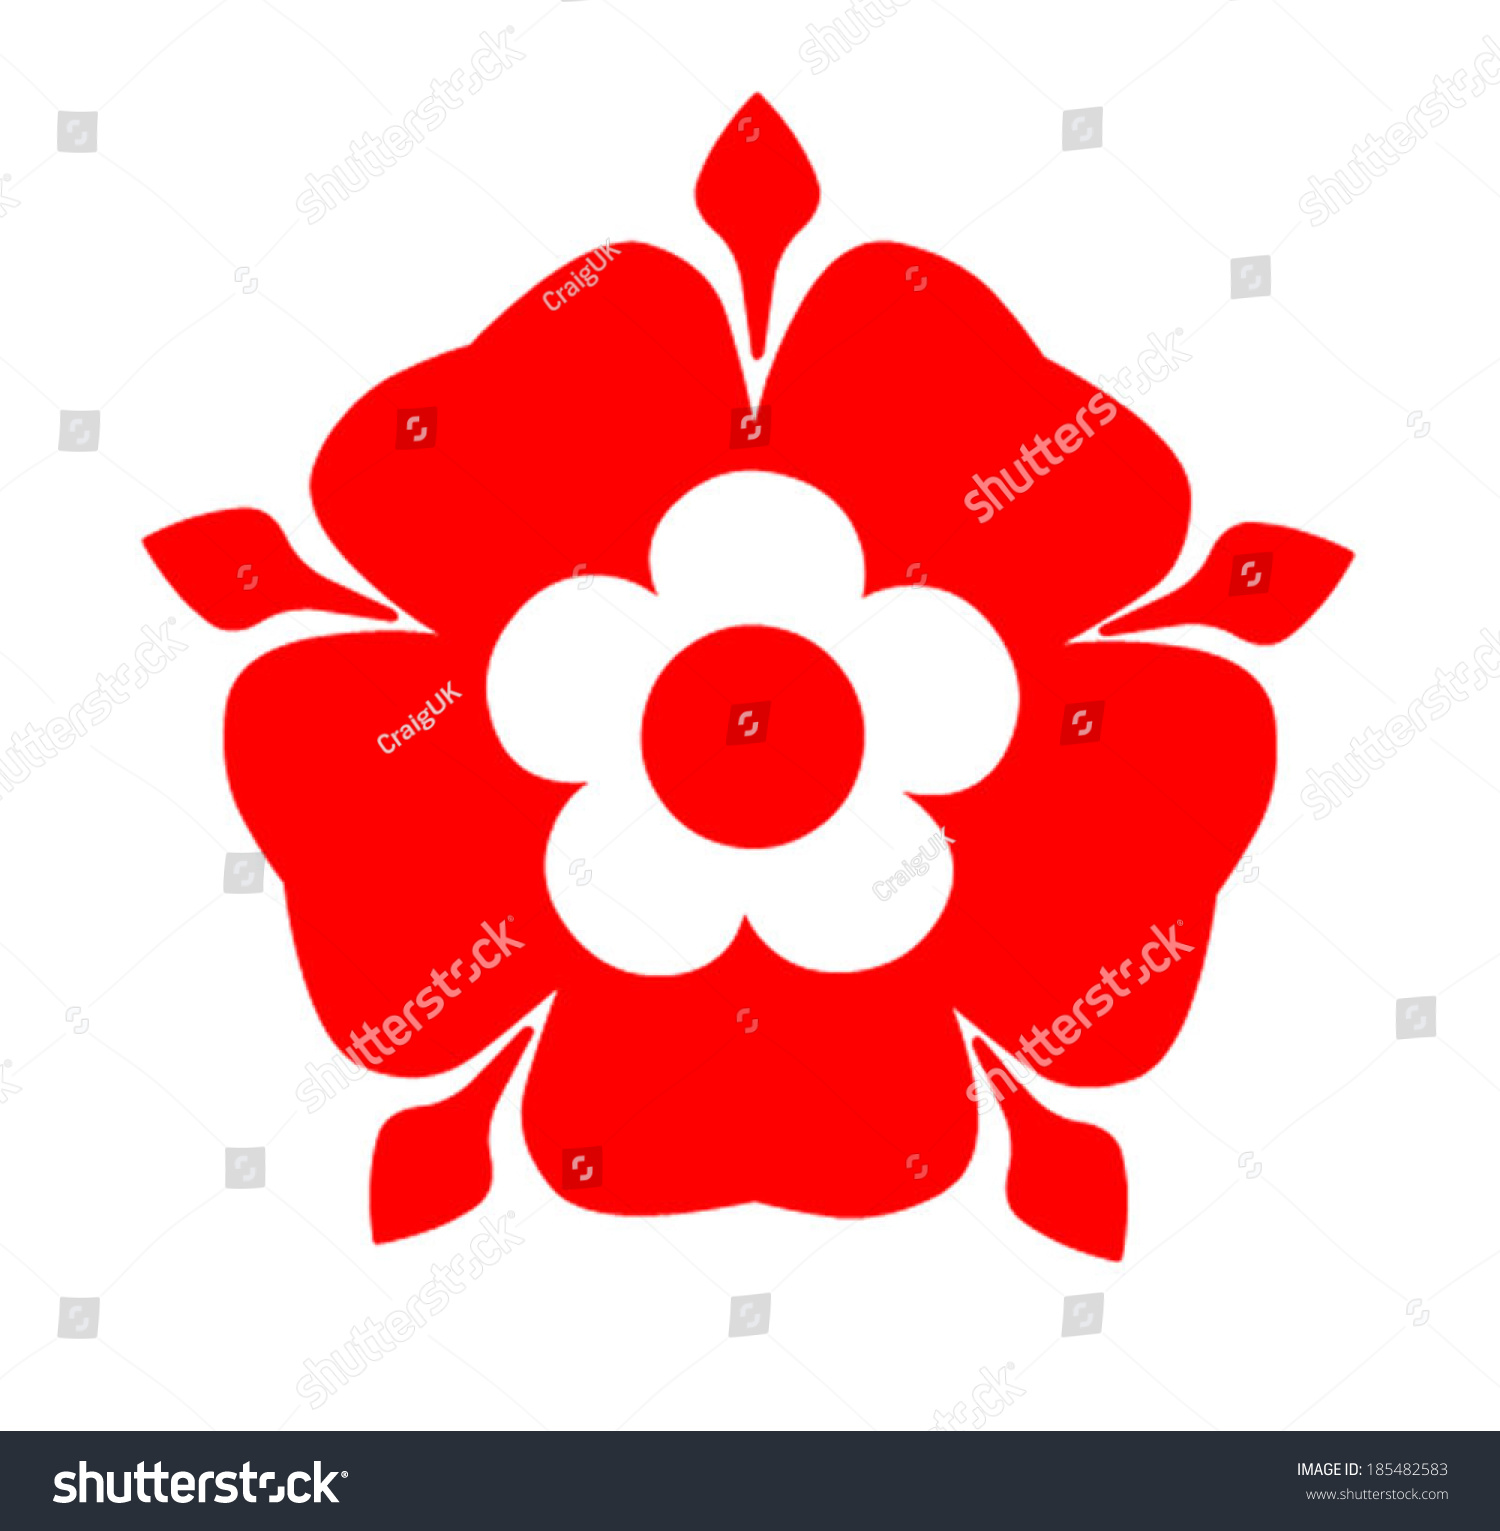 Royalty free tudor rose the tudor rose is a 185482583 stock photo tudor rose the tudor rose is a symbol of lancashire england the design is a combination of the symbols of the white rose of the house of york and the red buycottarizona Choice Image